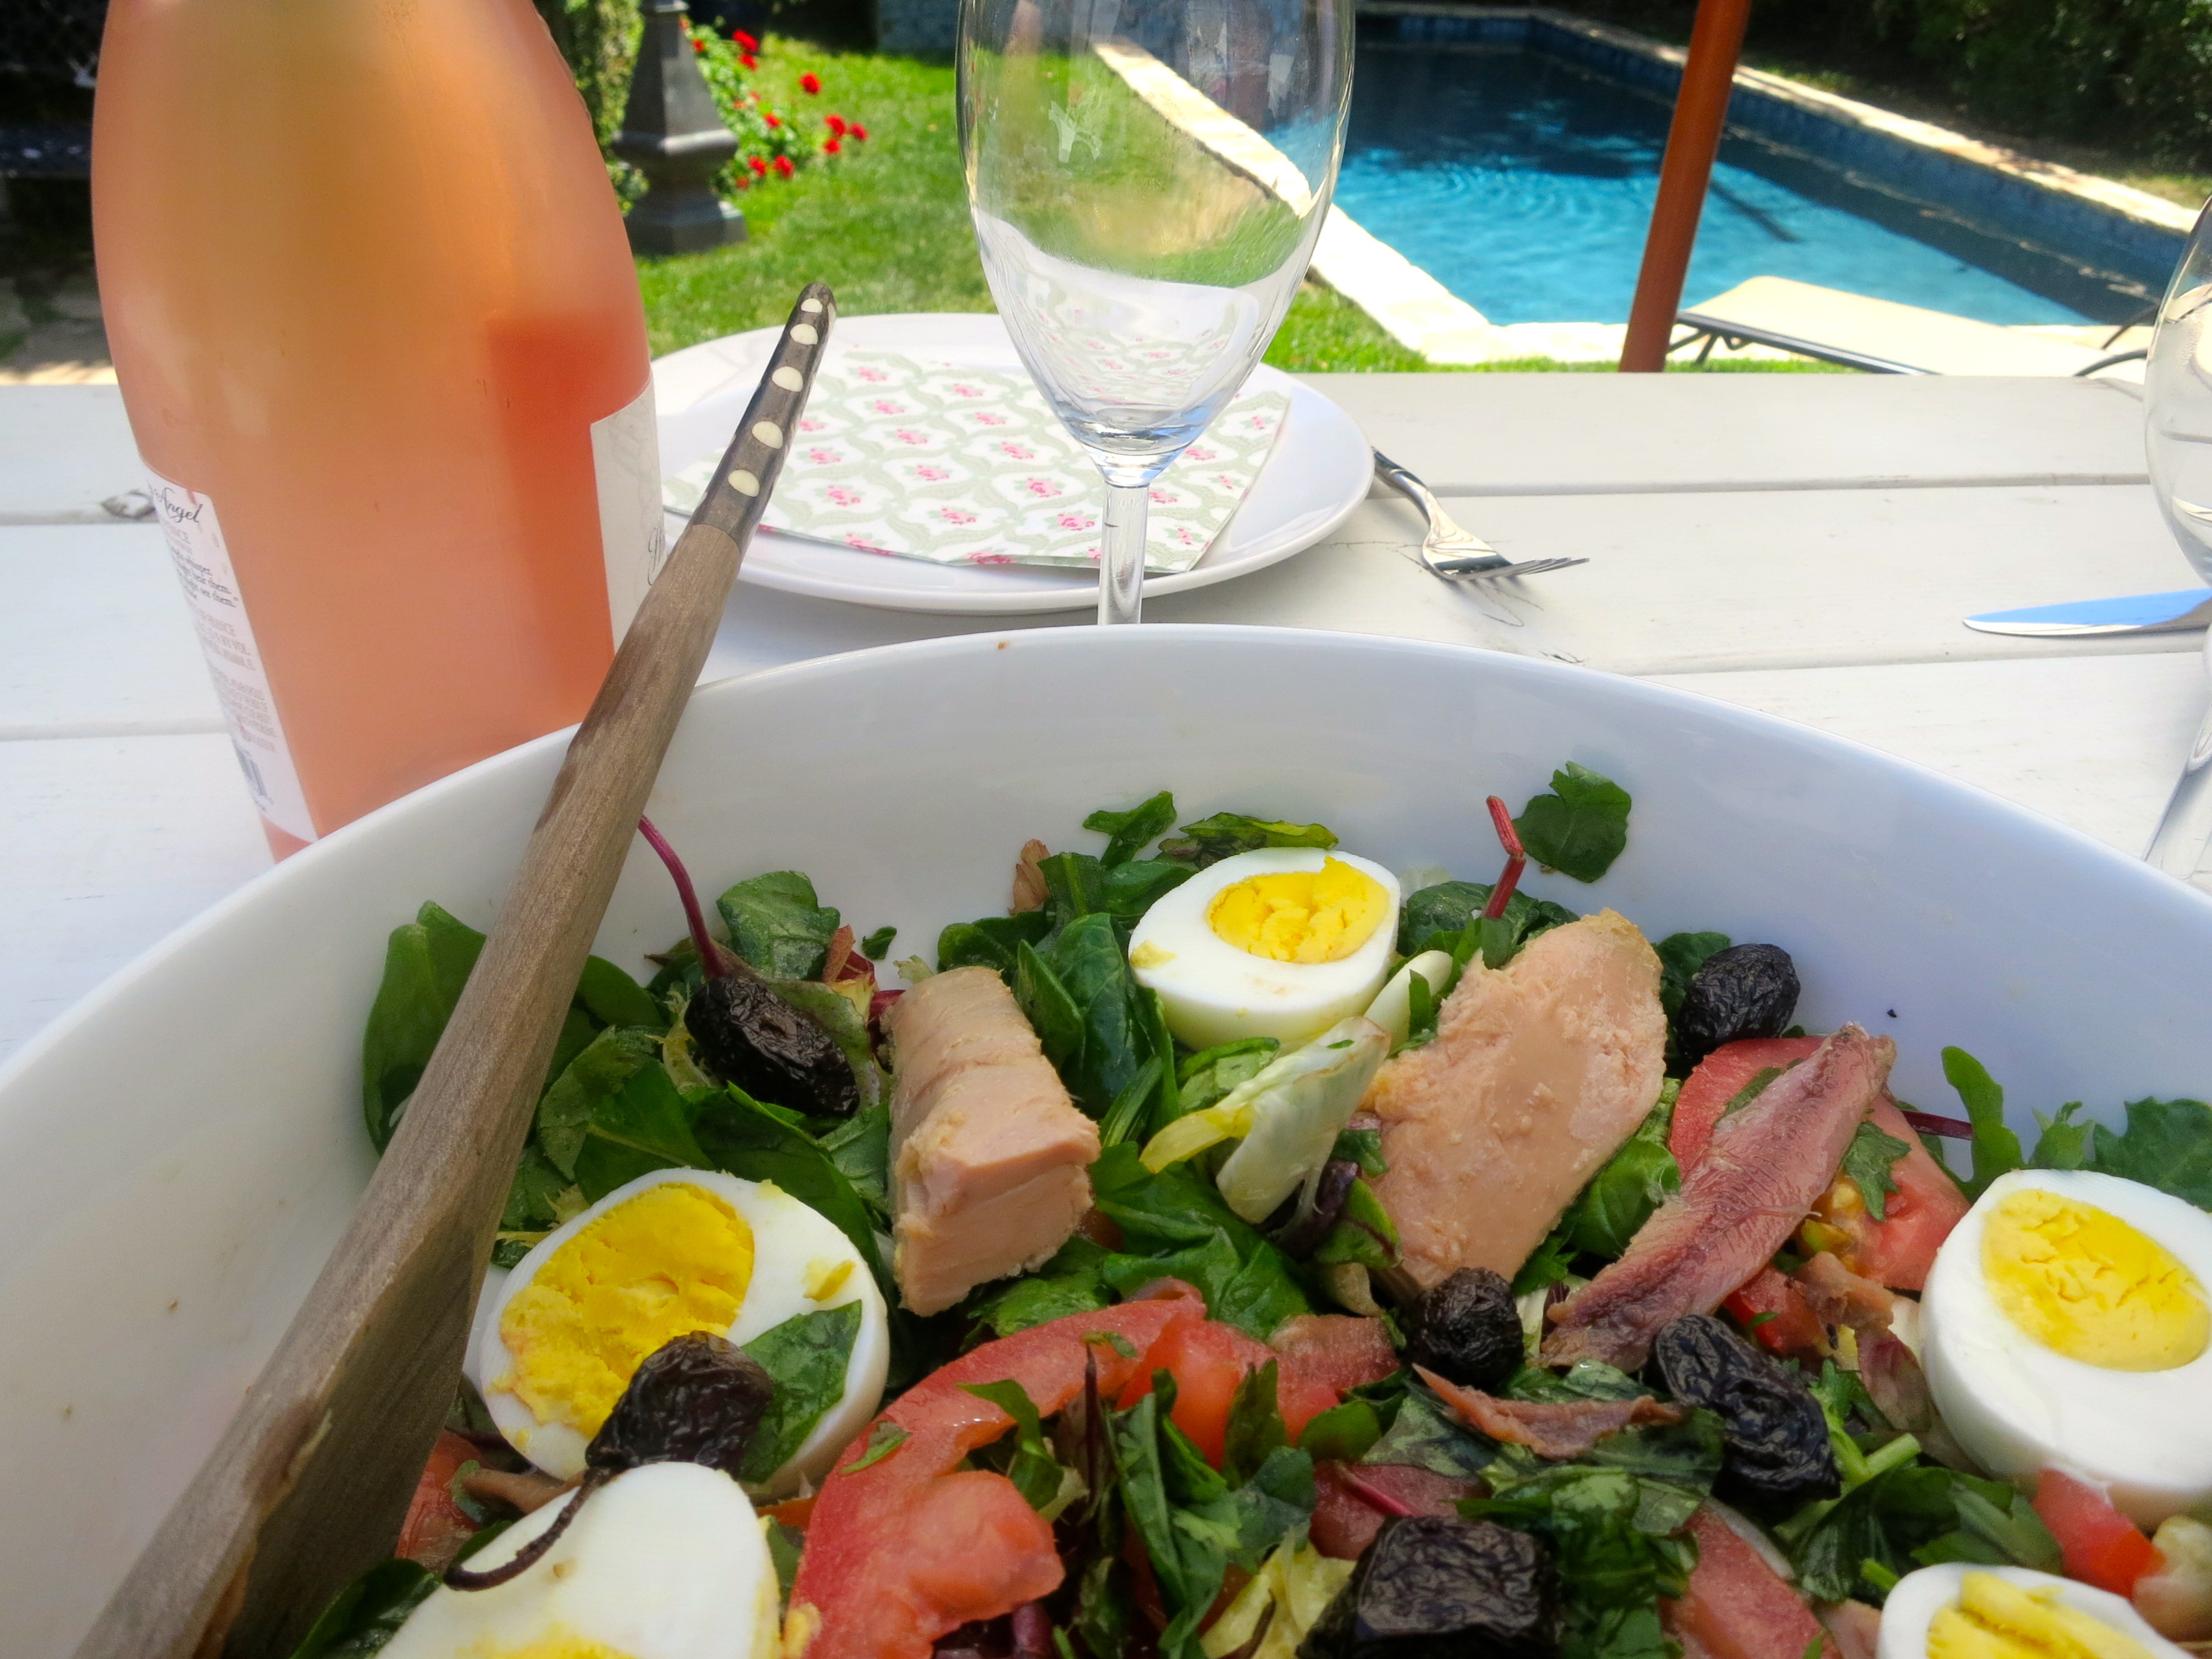 A classic French recipe from the South of France, salade nicoise is the perfect French salad for summer. Low cal, full of good nutrients and vitamins, packed with omega 3 and amazing flavours, it's the best way to lose weight the smart way!